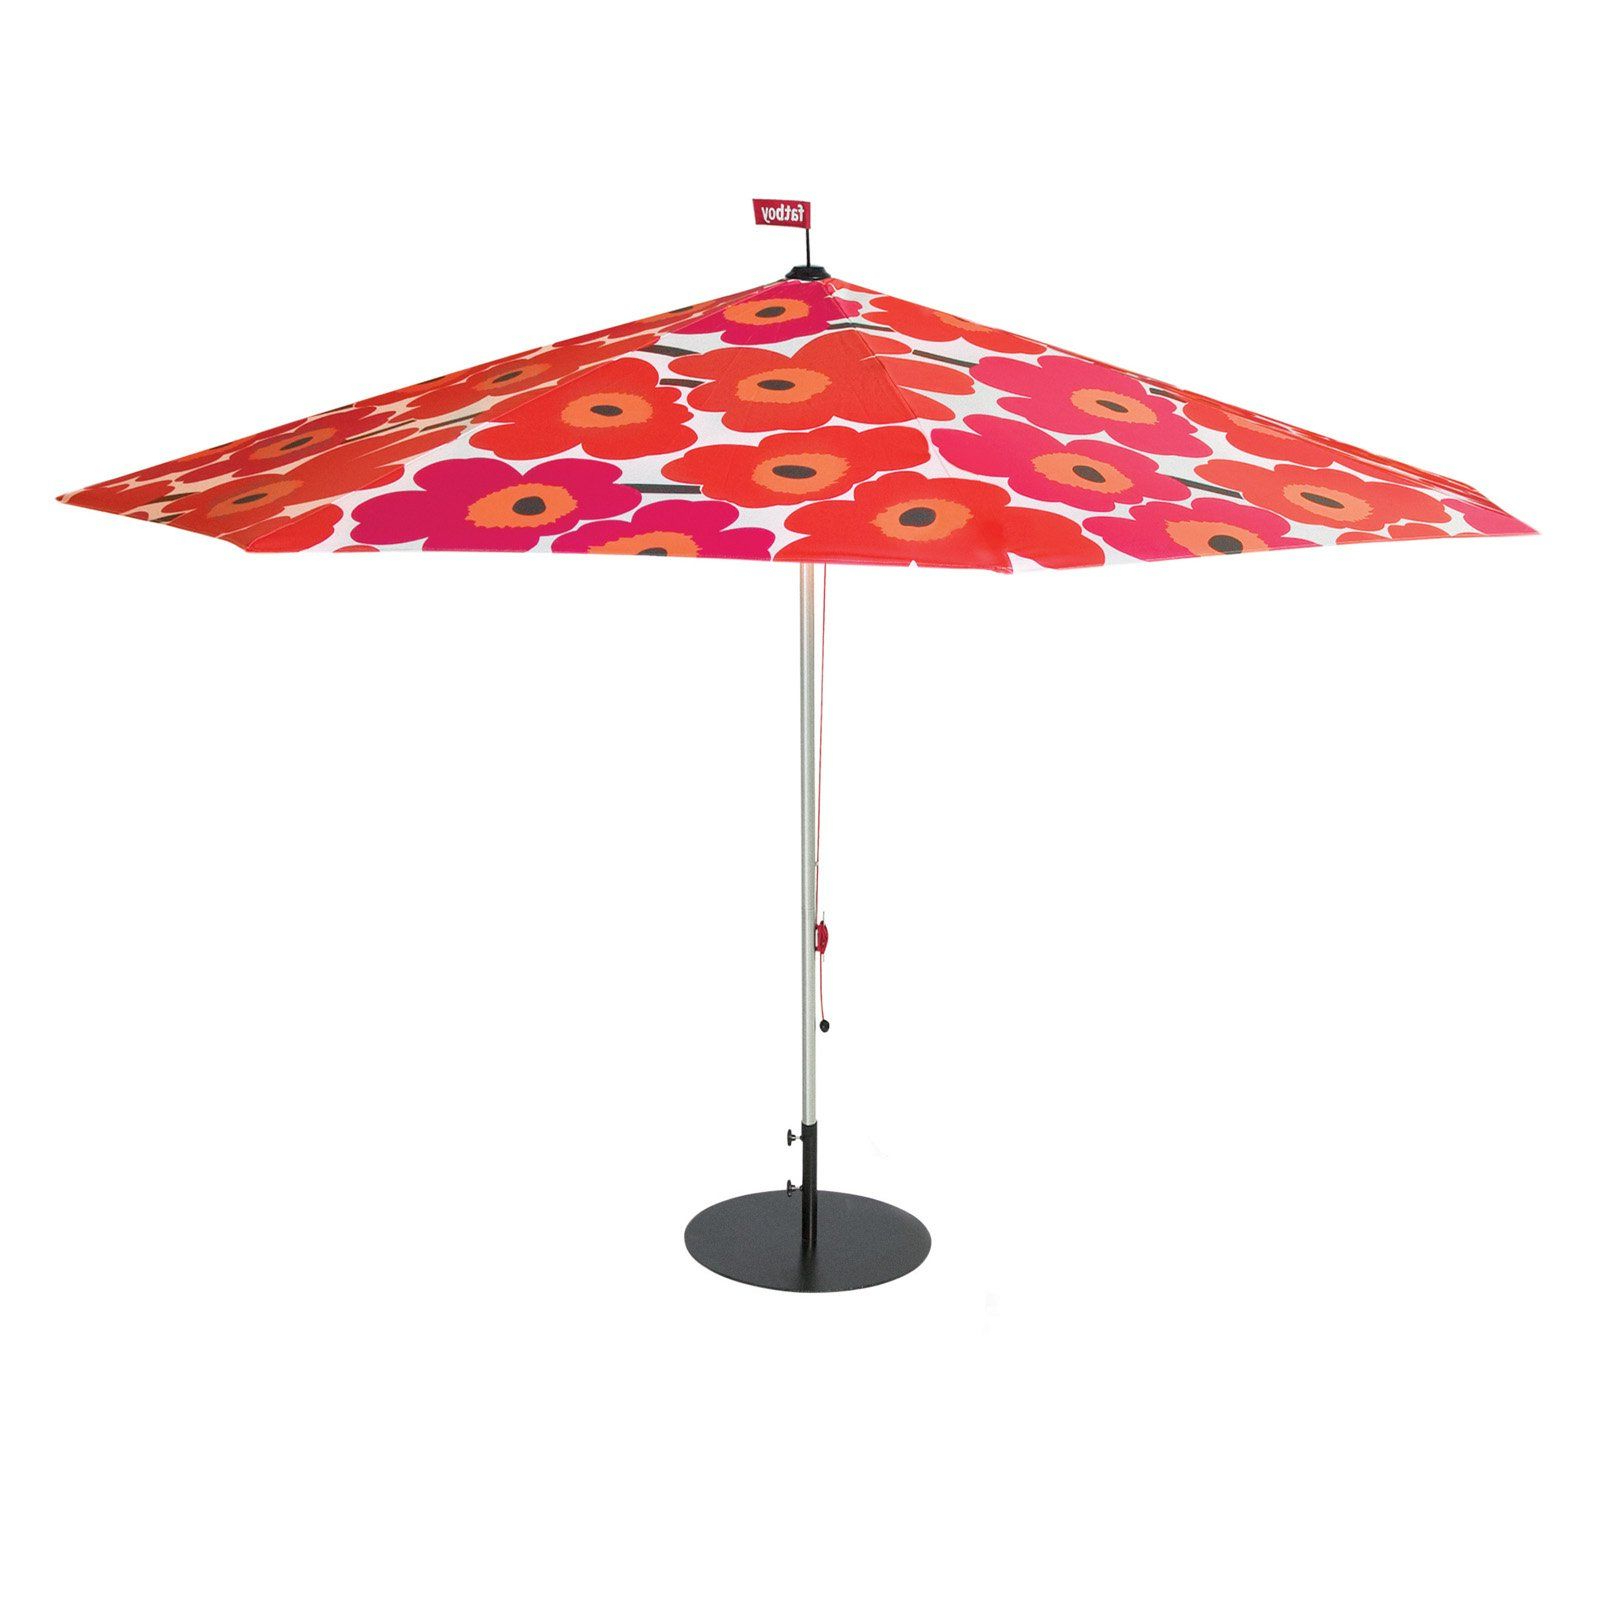 Lizarraga Market Umbrellas Inside Fashionable Fatboy Marimekko Parasol.. (Gallery 9 of 20)